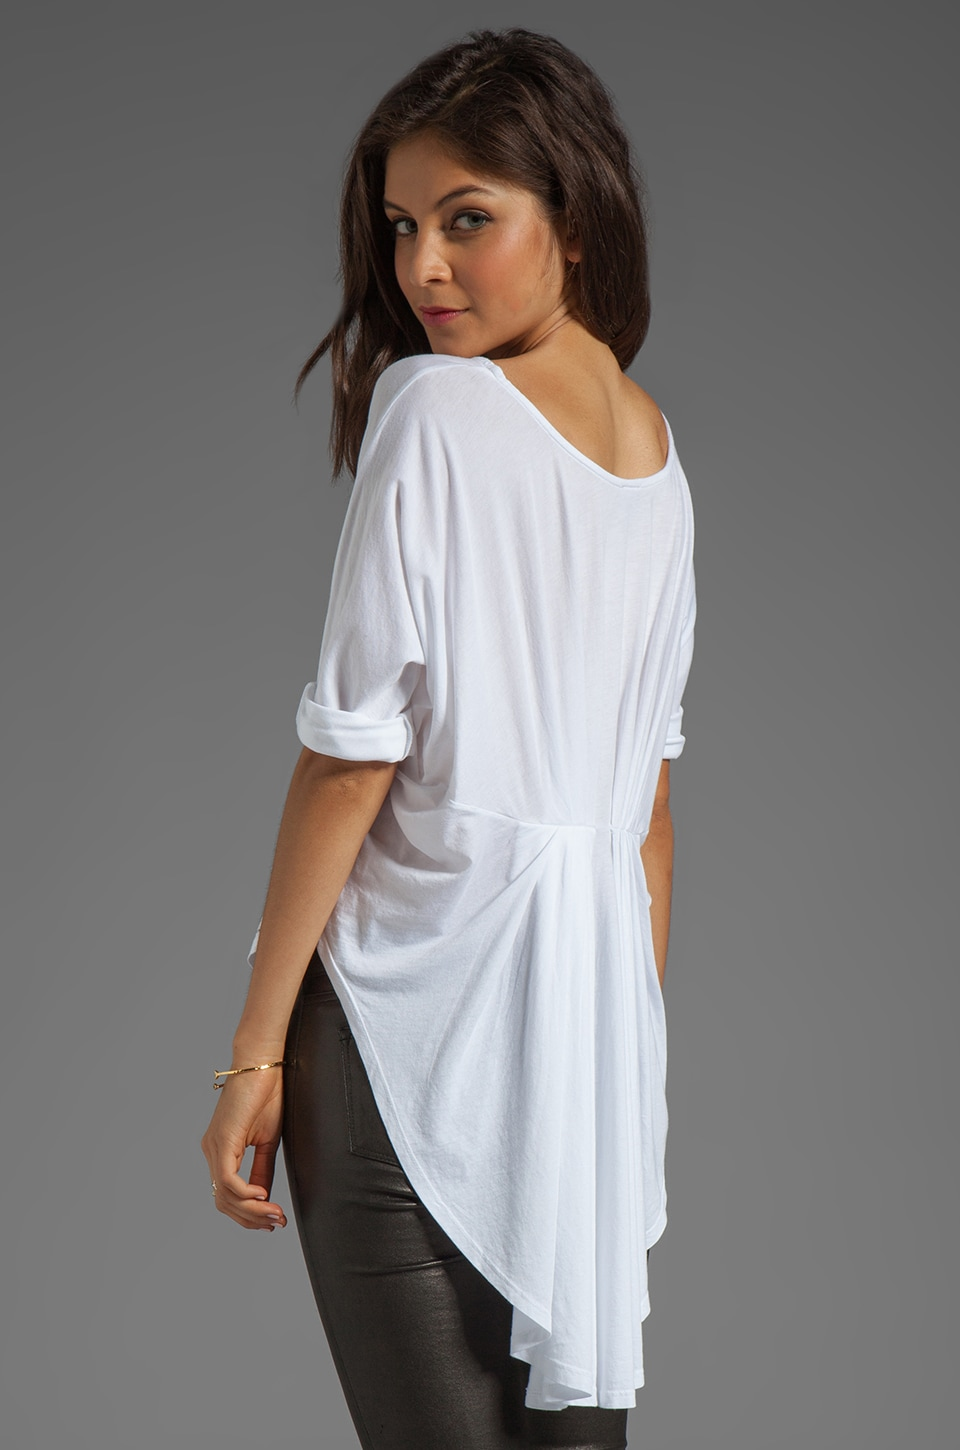 Bobi Short Sleeve High Low Tee in White